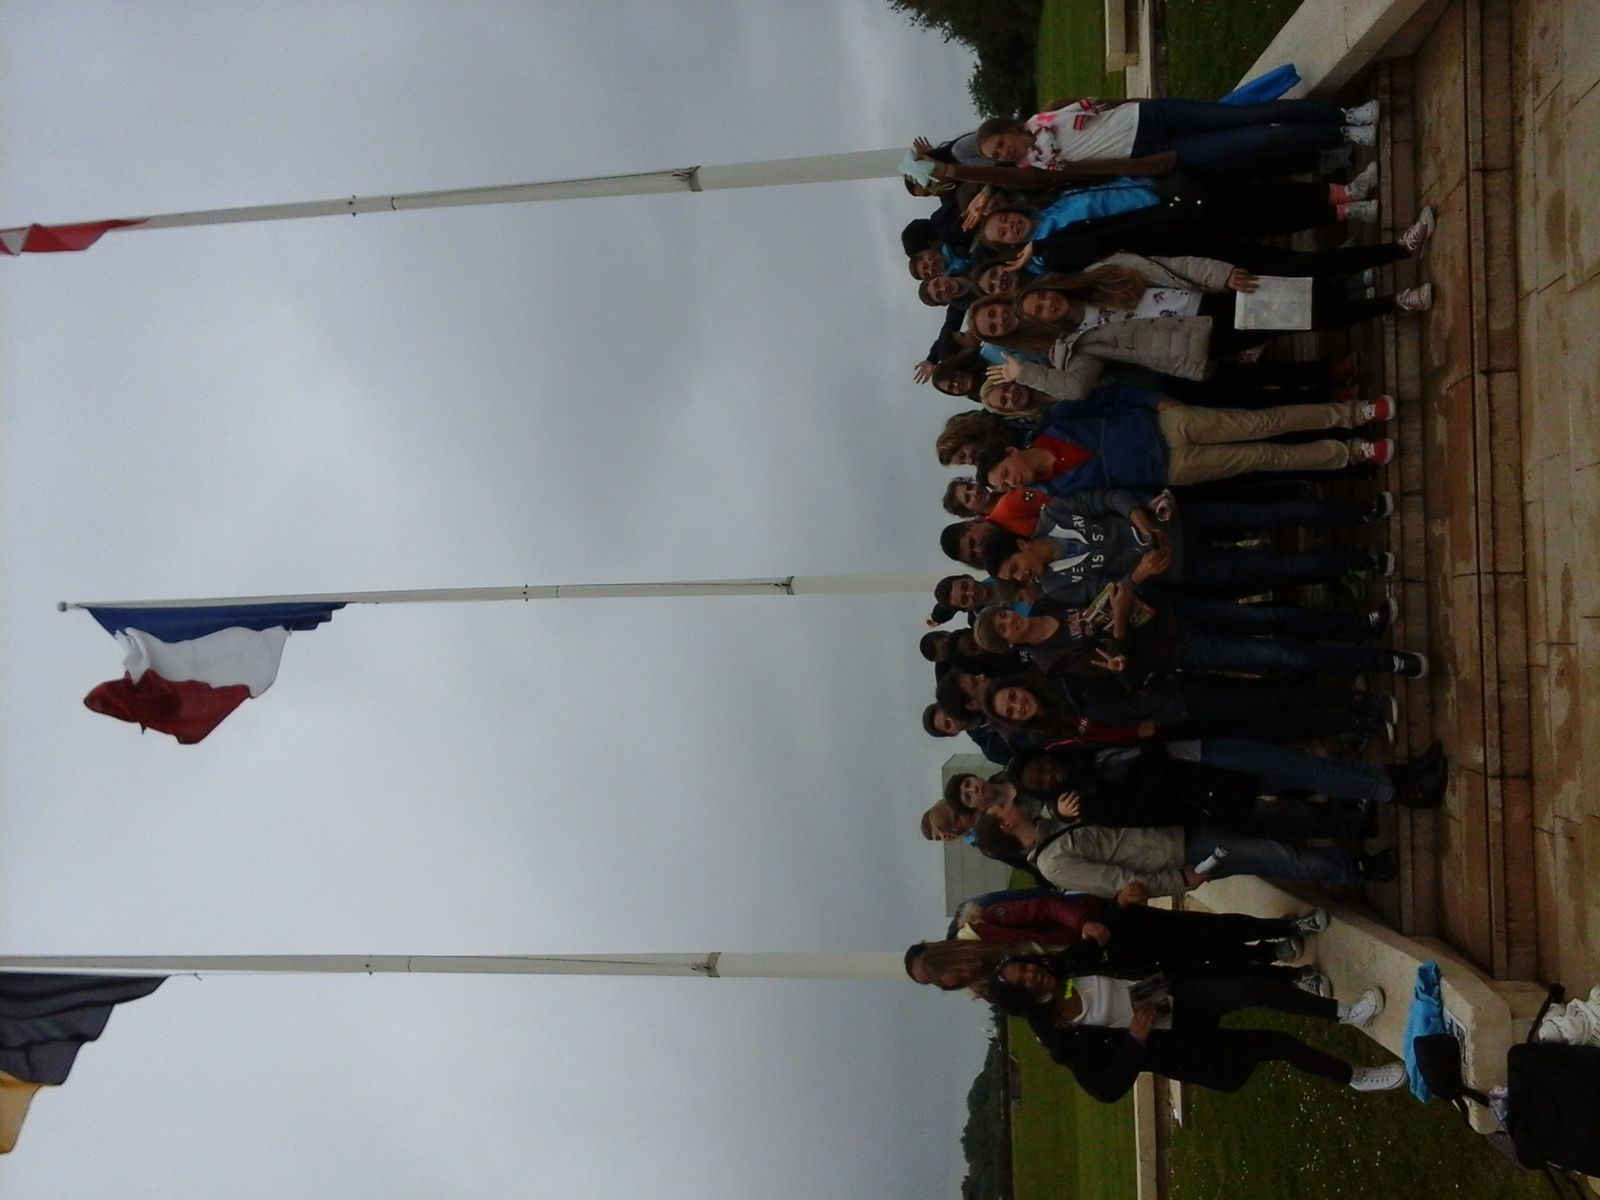 Trip to Normandy - Step 1 : Remembrance at Caen memorial